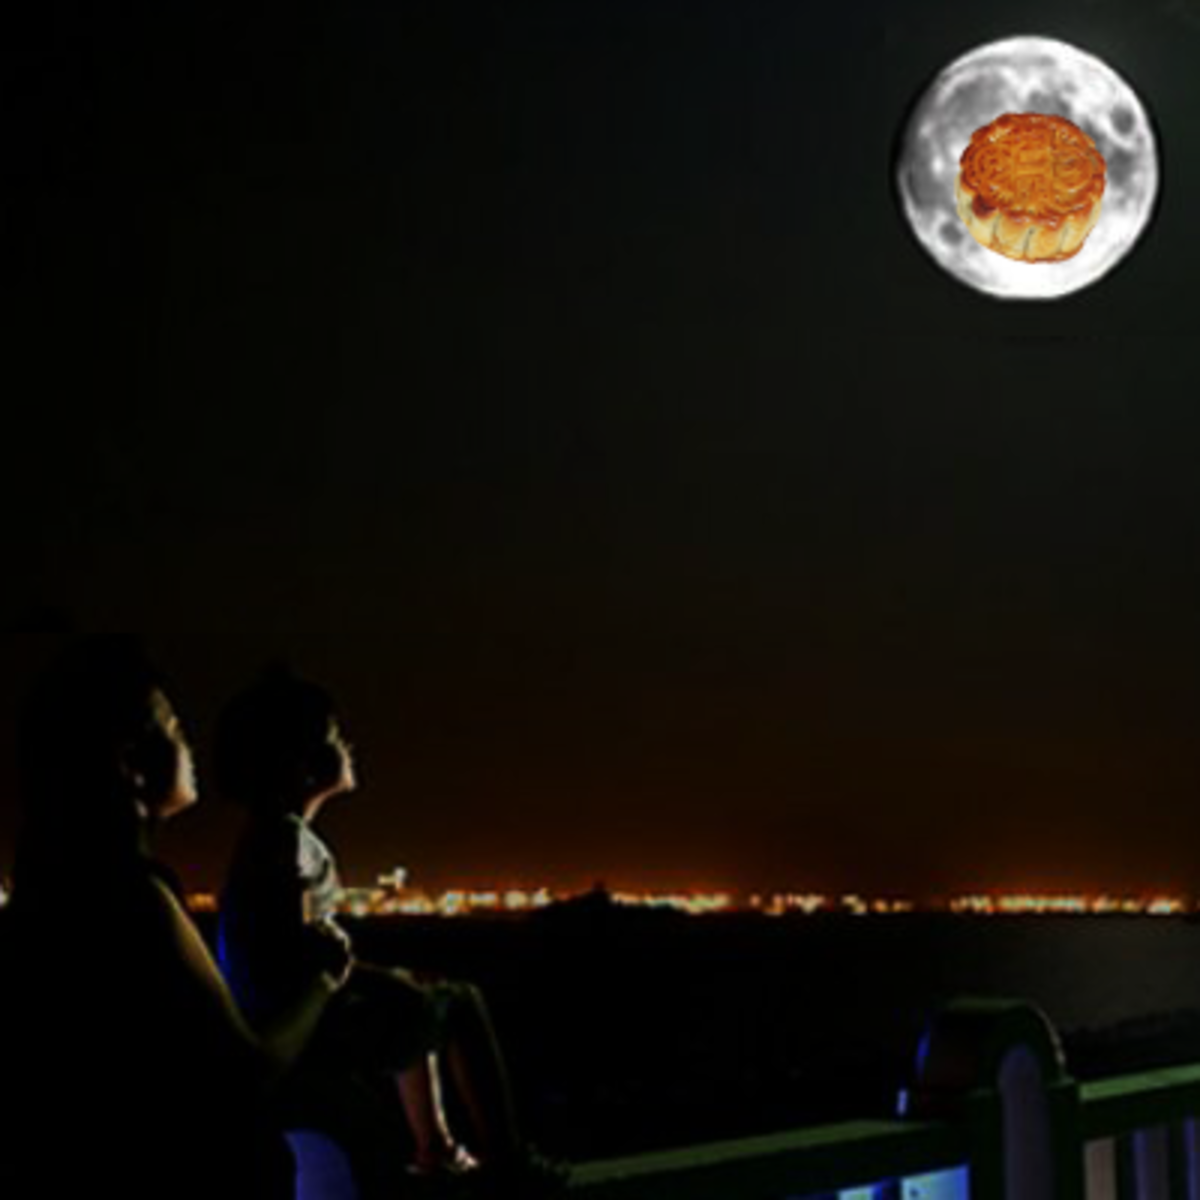 Gazing at the full moon - yes, there's a mooncake!